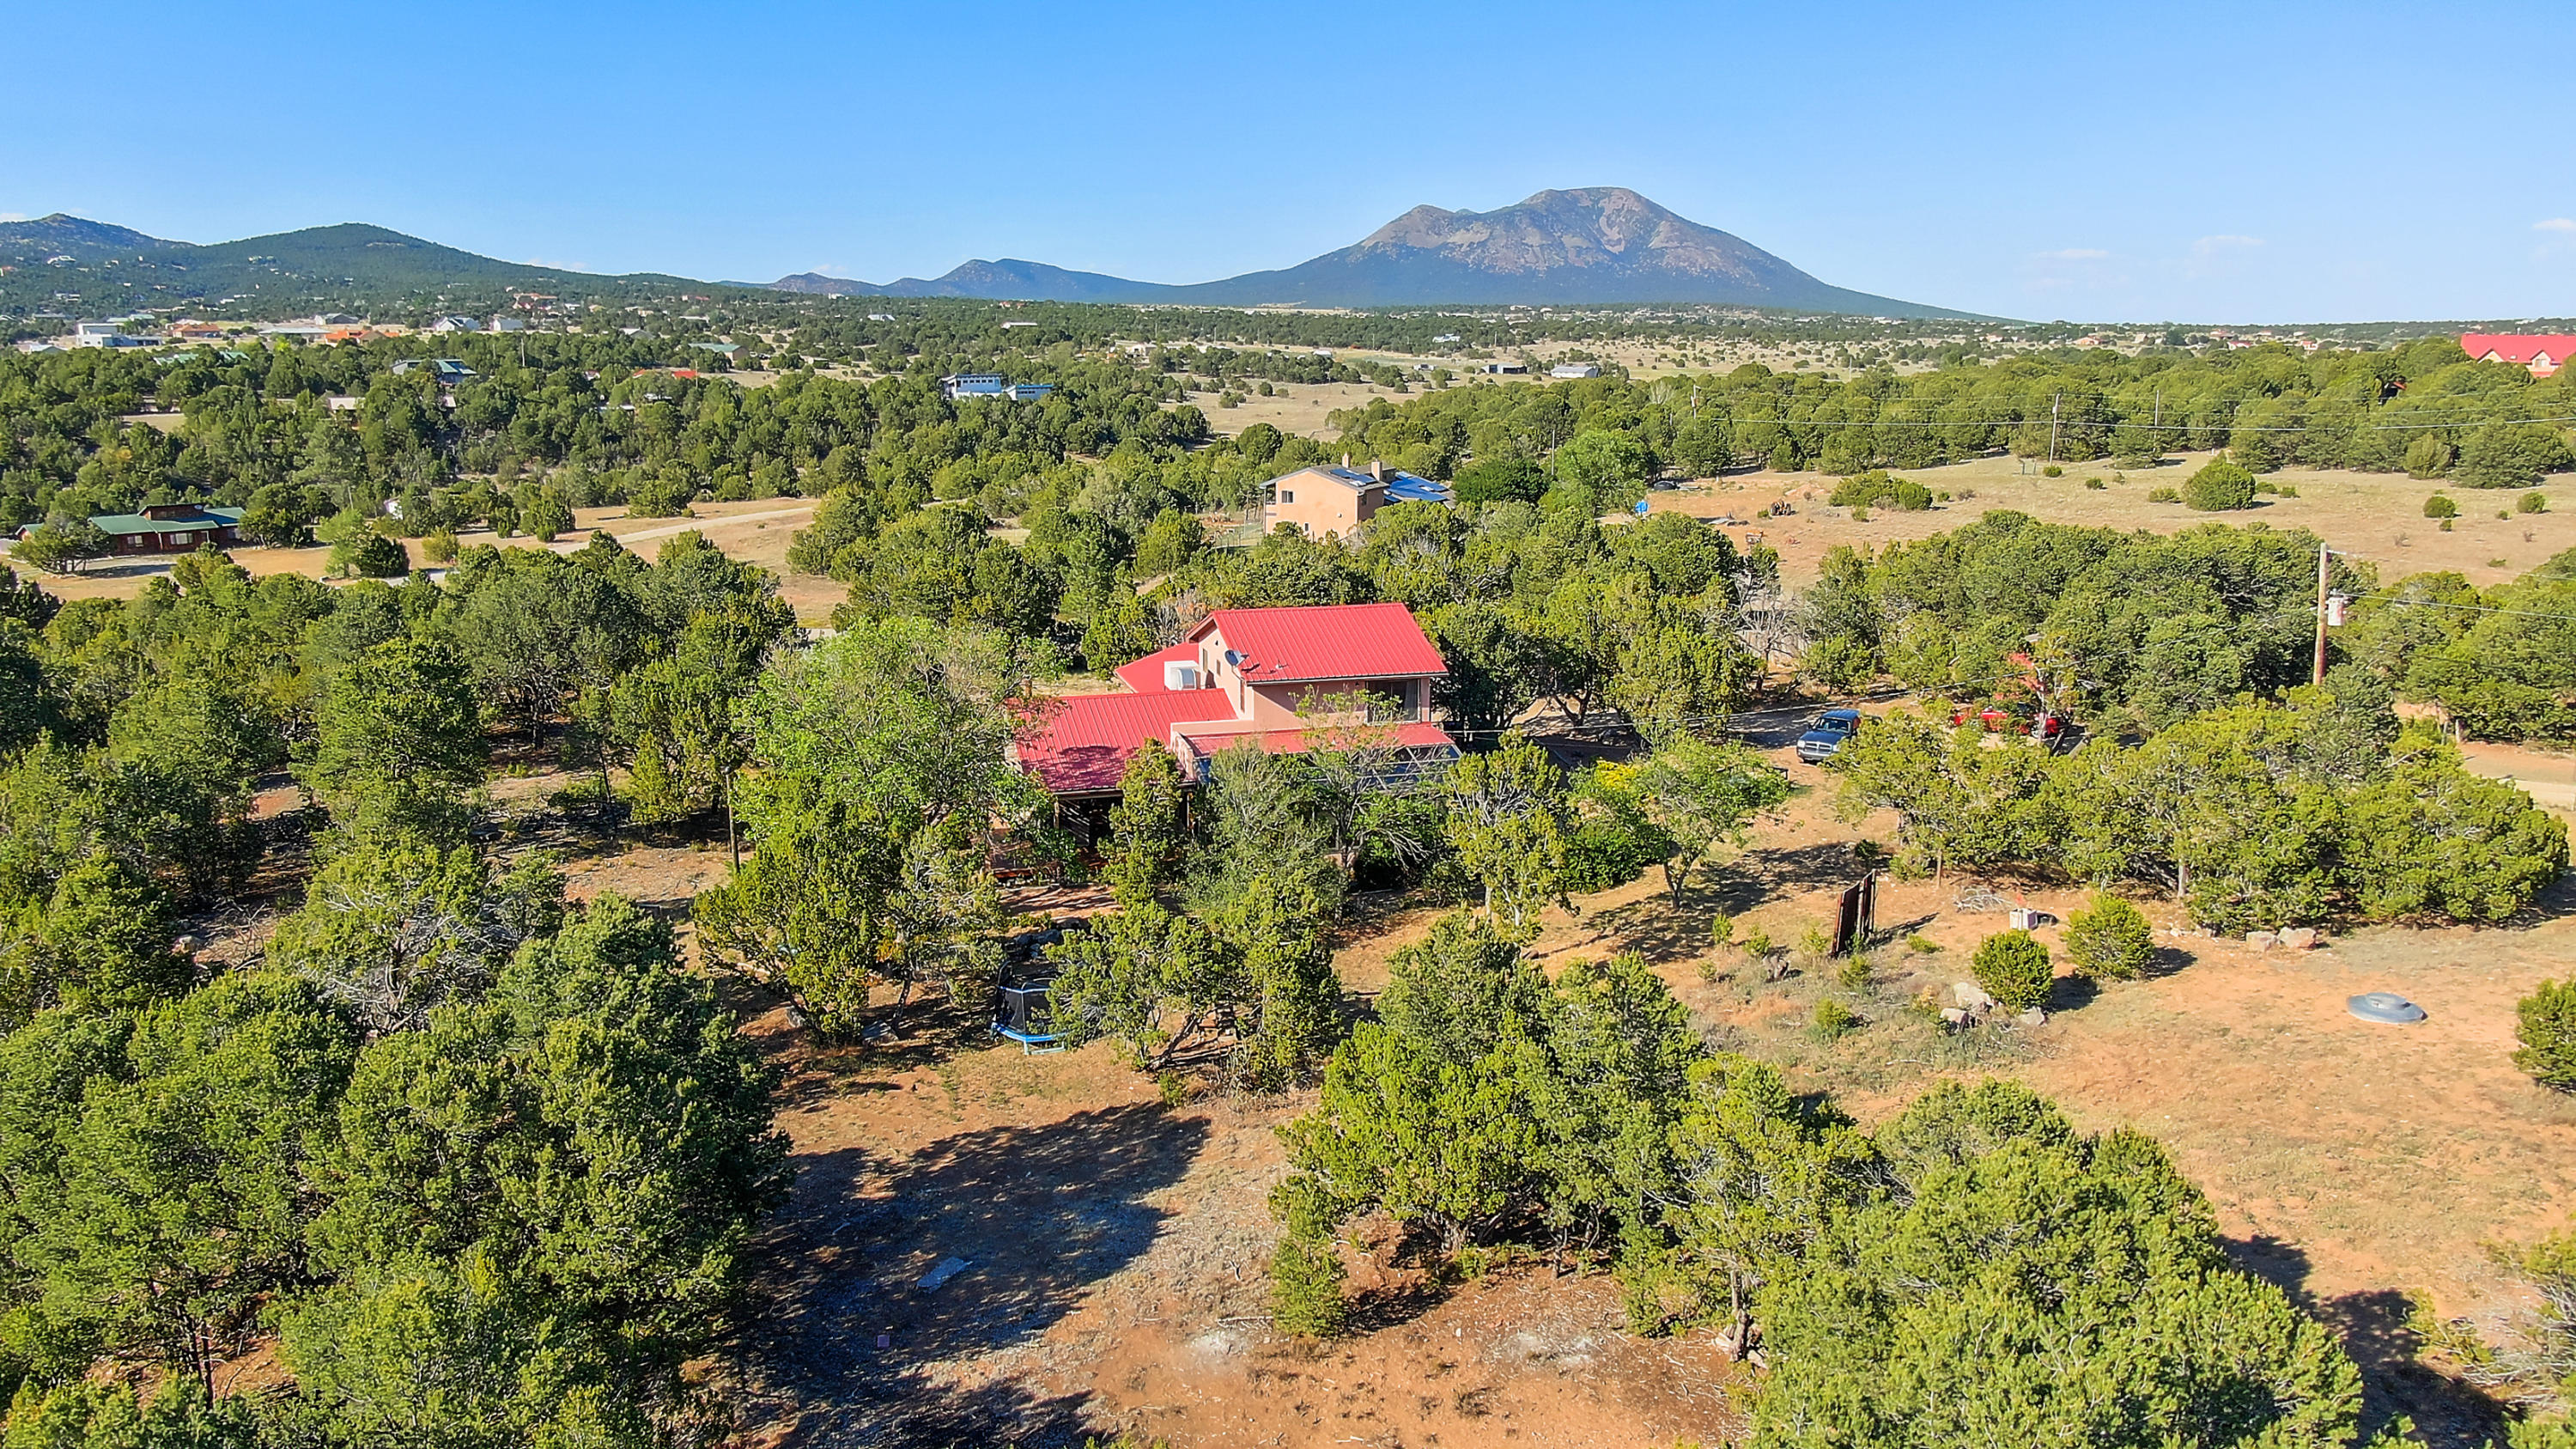 Beautifully updated and upgraded home on over 4 acres in lovely Sandia Park. Spacious great room with cathedral, wood-beam ceilings, laminate wood flooring, and pellet stove. Huge, fully remodeled, gourmet kitchen offers granite countertops, full stainless steel appliance package, breakfast bar, large island, and custom cabinetry. Large heated sunroom with incredible mountain views. Master suite on the main floor boasts 2 walk in closets with organizational shelving, rain shower, and dual sinks. Two additional guest bedrooms upstairs with new carpet and updated full hall bath.  Very secluded, fully fenced, private lot with tons of trees, natural landscaping, remote gate entrance and 2 storage sheds. This is a must-see property! Virtual and Video tours available!